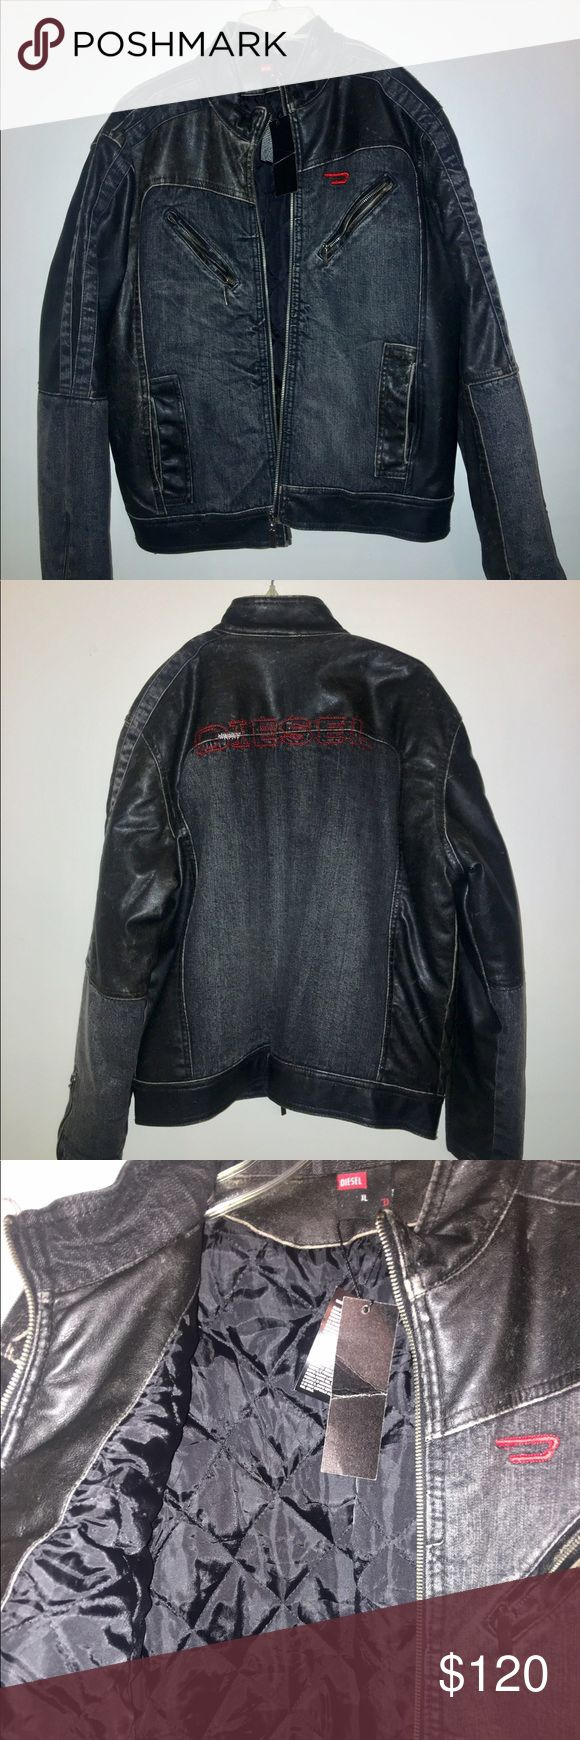 NWT mens Diesel Moto jacket New with tags diesel moto jacket. Leather denim combo. Runs small Diesel Jackets & Coats